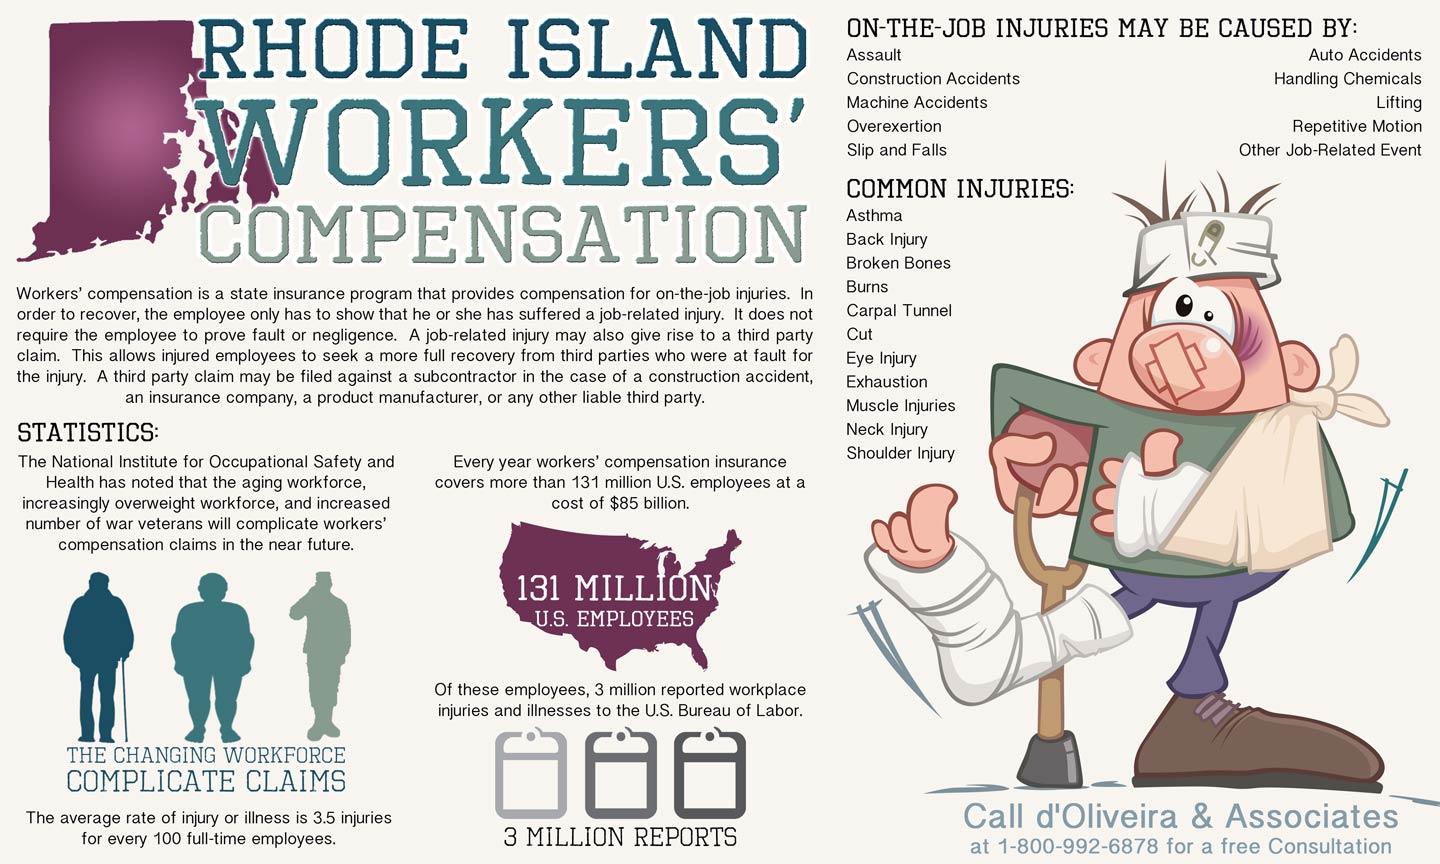 Rhode Island Workers' Compensation | Visual ly